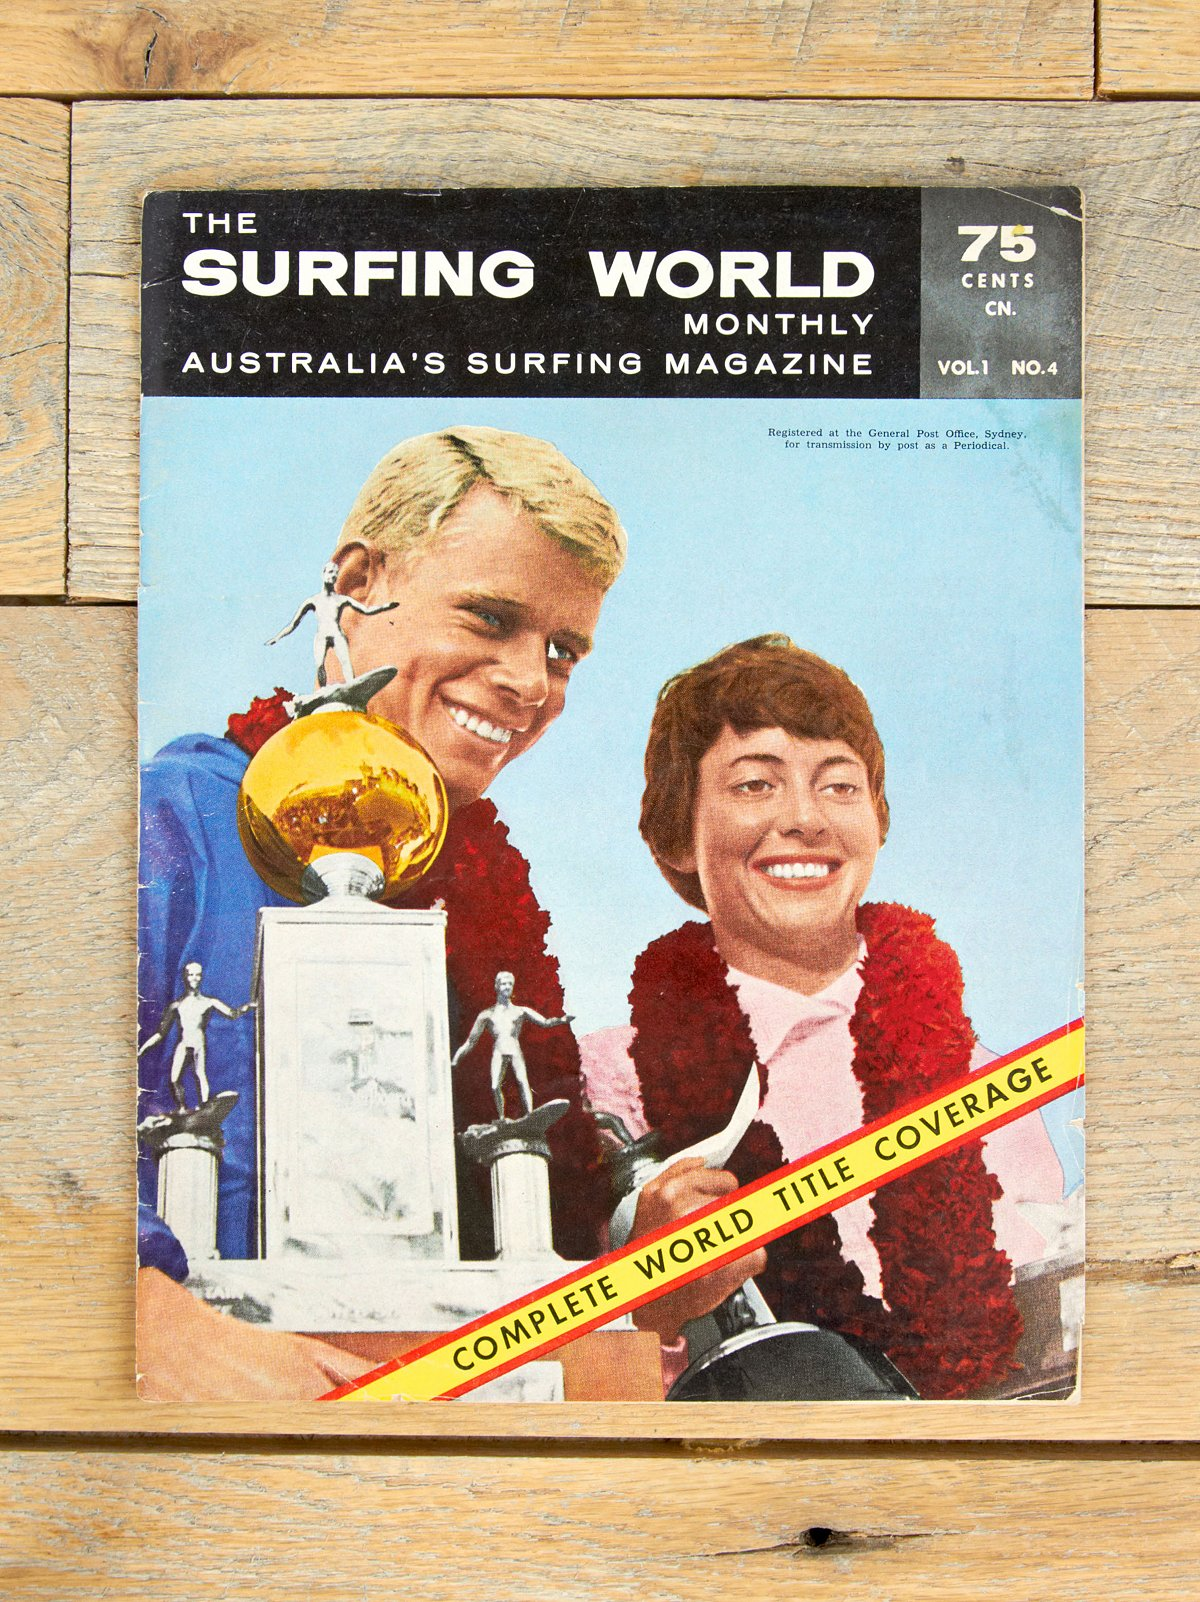 Vintage Surfing World Monthly Magazine Vol. 1 No. 4